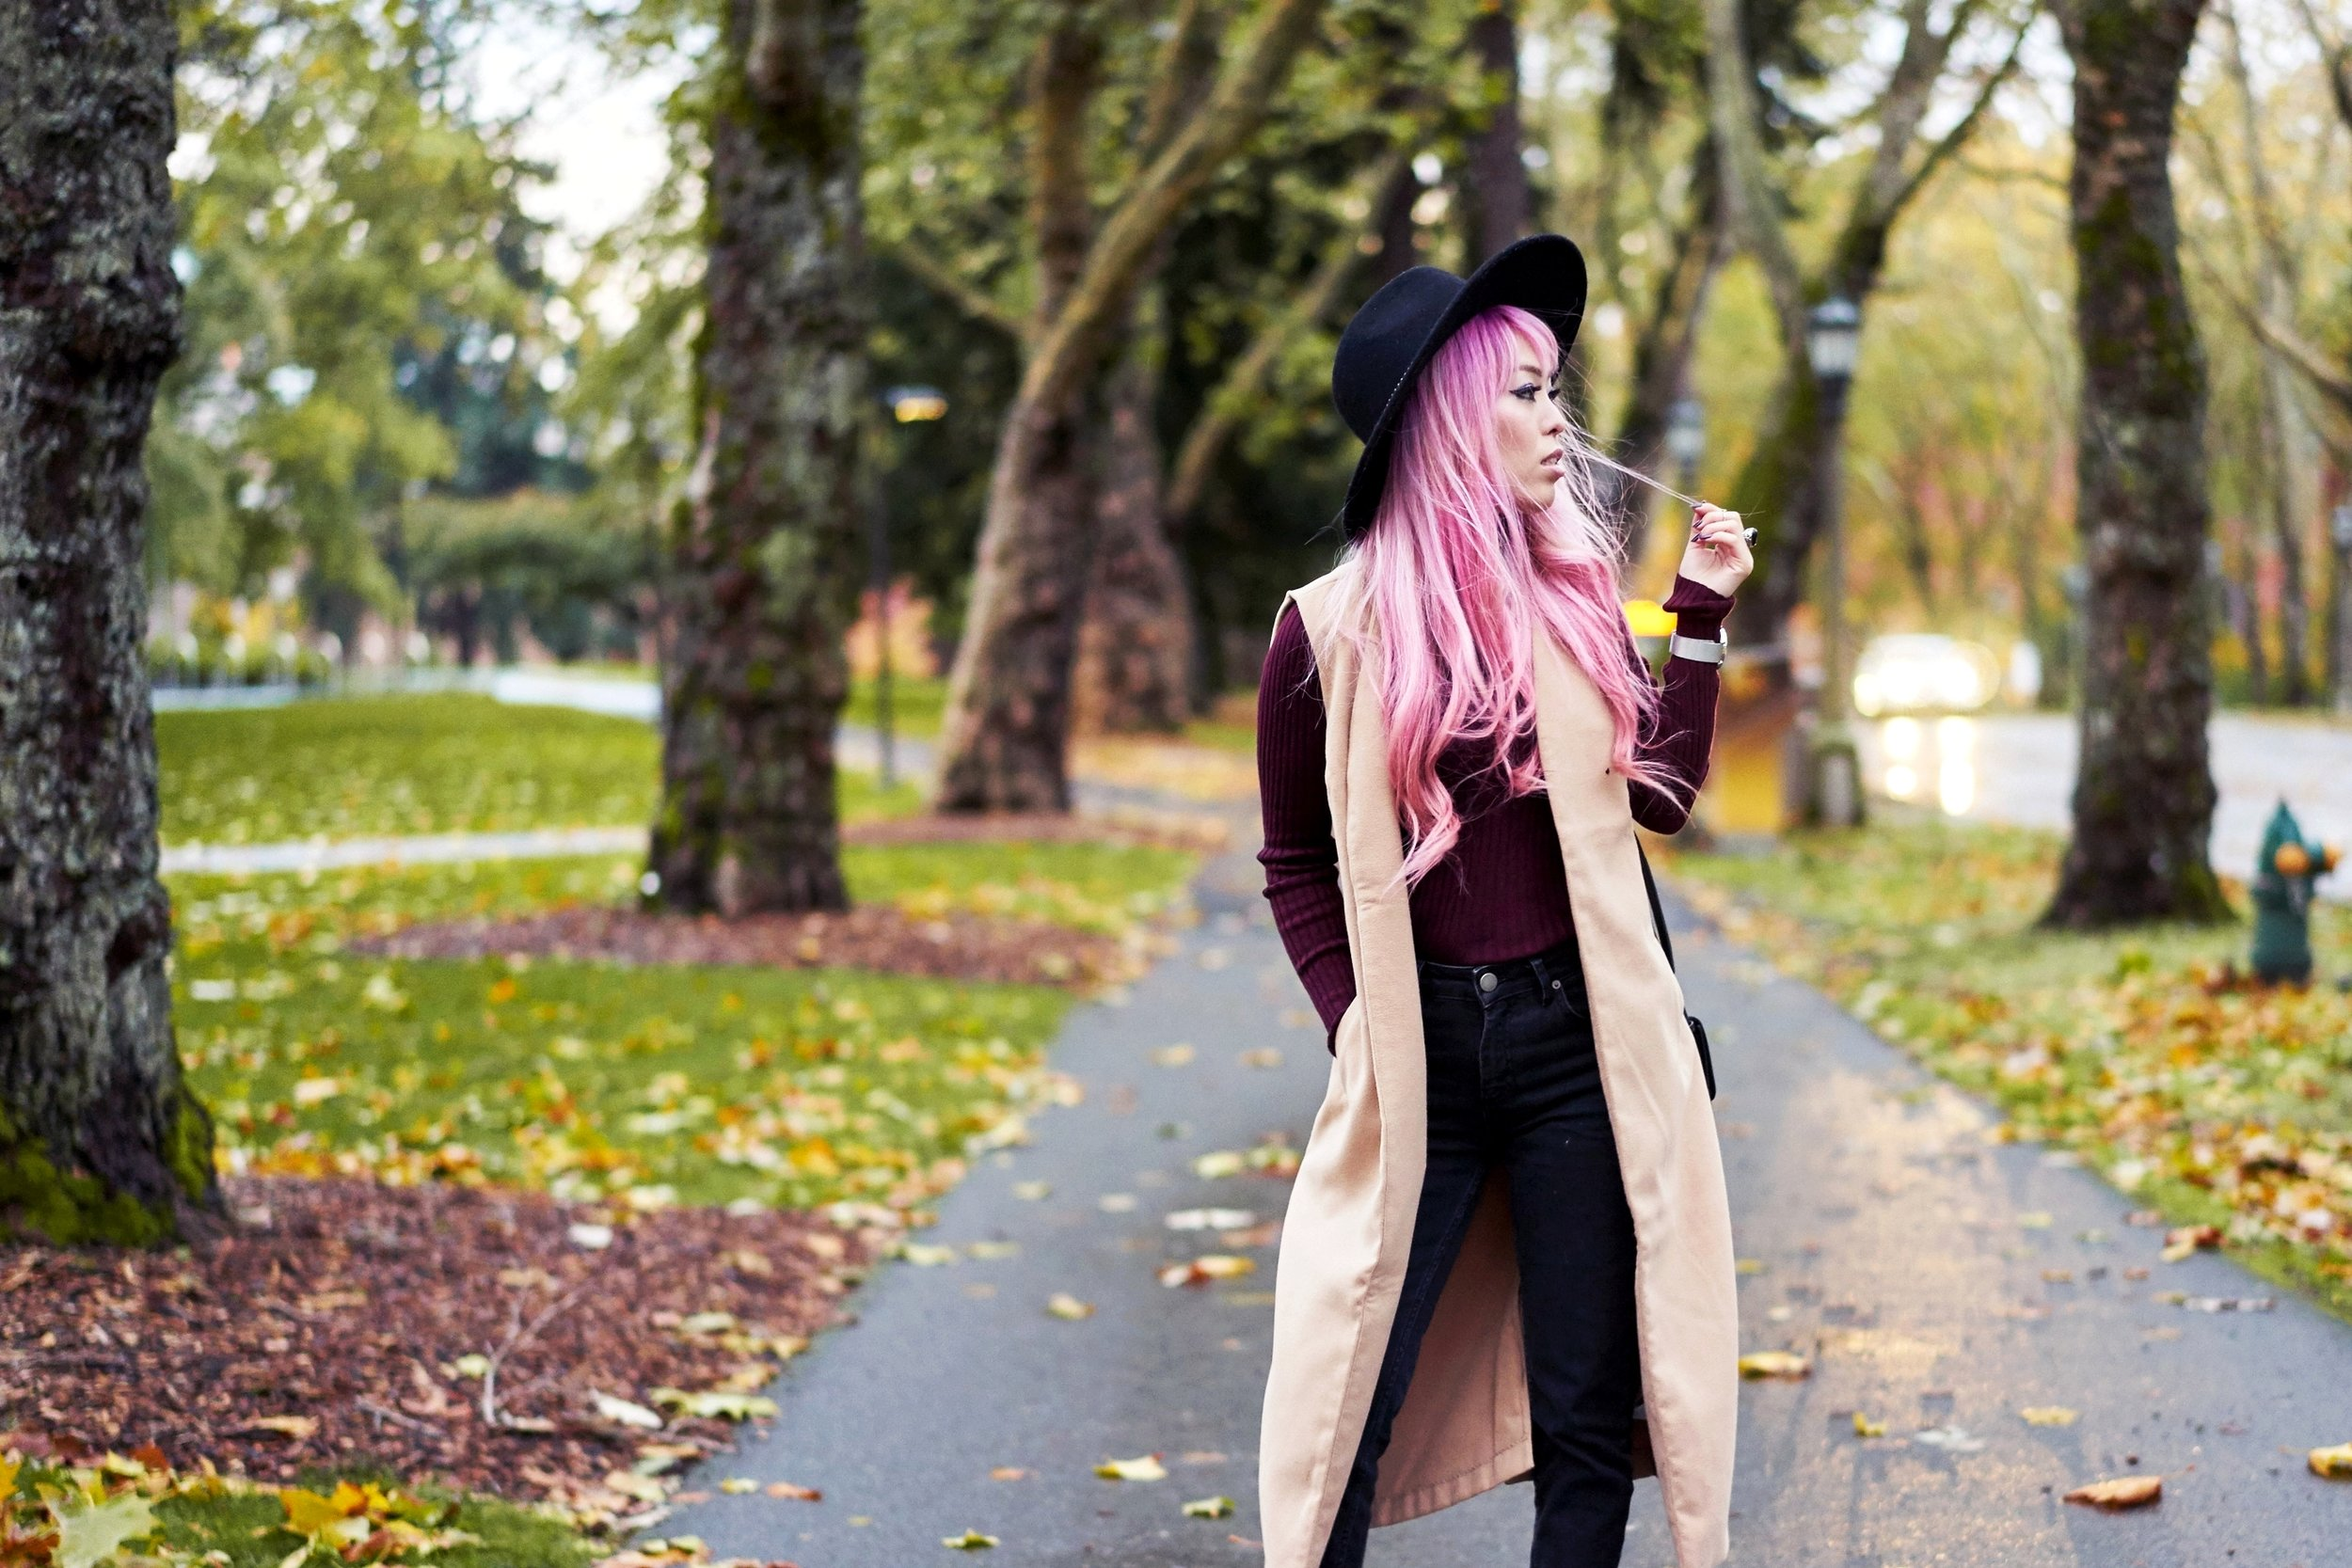 Forever 21 Fedora_Who What Wear : Target Rib Turtleneck_ASOS High Waist Mom Jeans_Ego Floral Print Ankle Boots_Christian Paul Marble Watch_Aika's Love Closet_Seattle Fashion Blogger_Japanese_Pink Hair 13